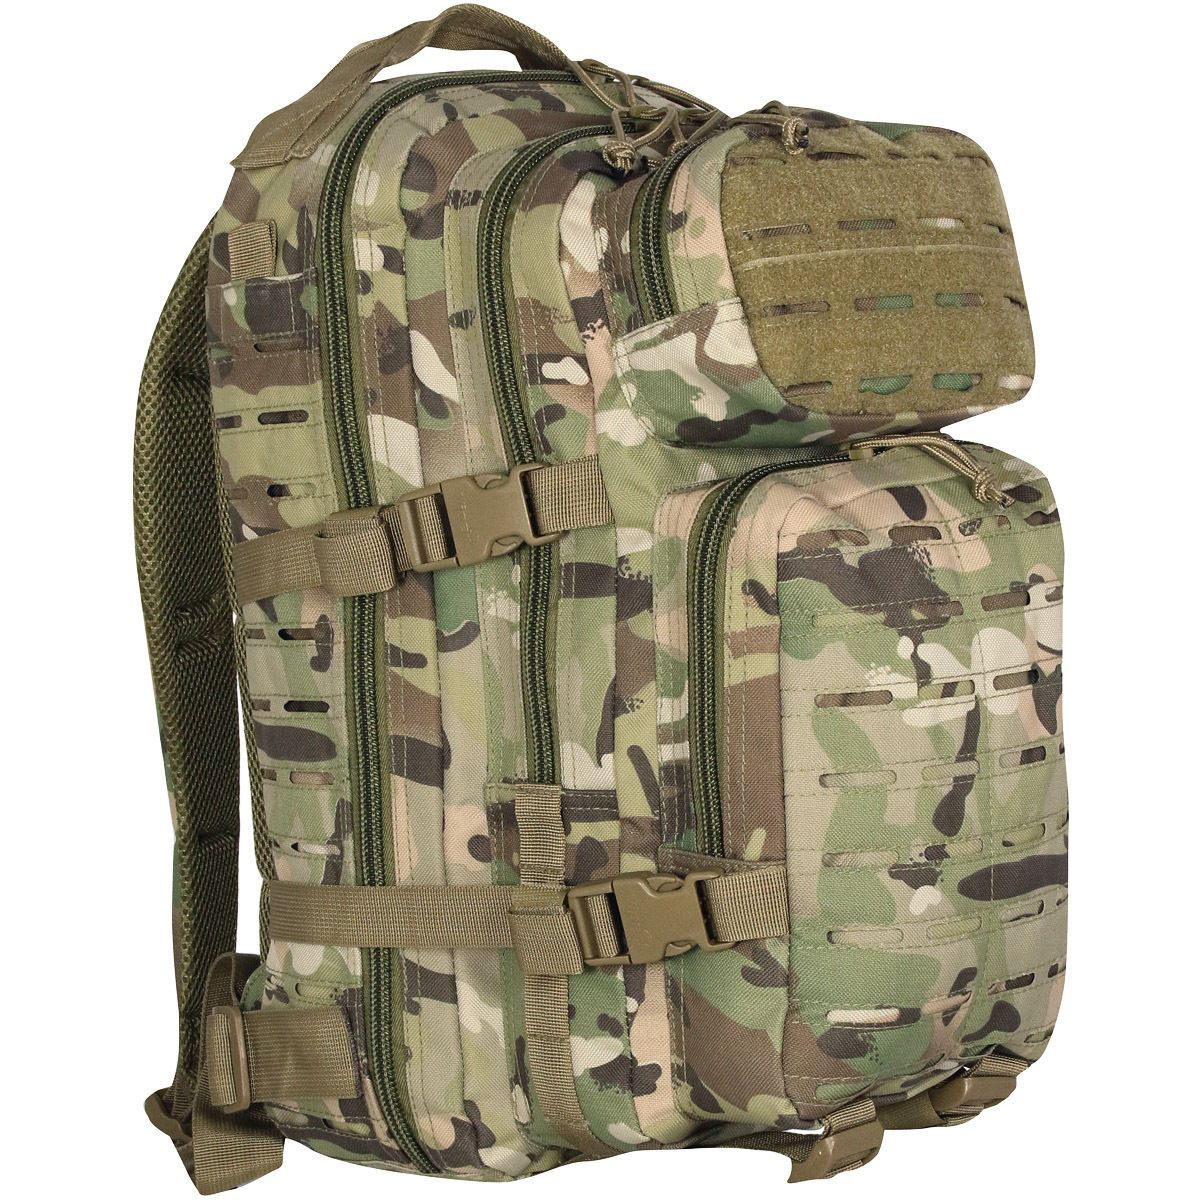 Viper Tactical Lazer Garrison Pack Airsoft MOLLE Backpack Rucksack Combat New